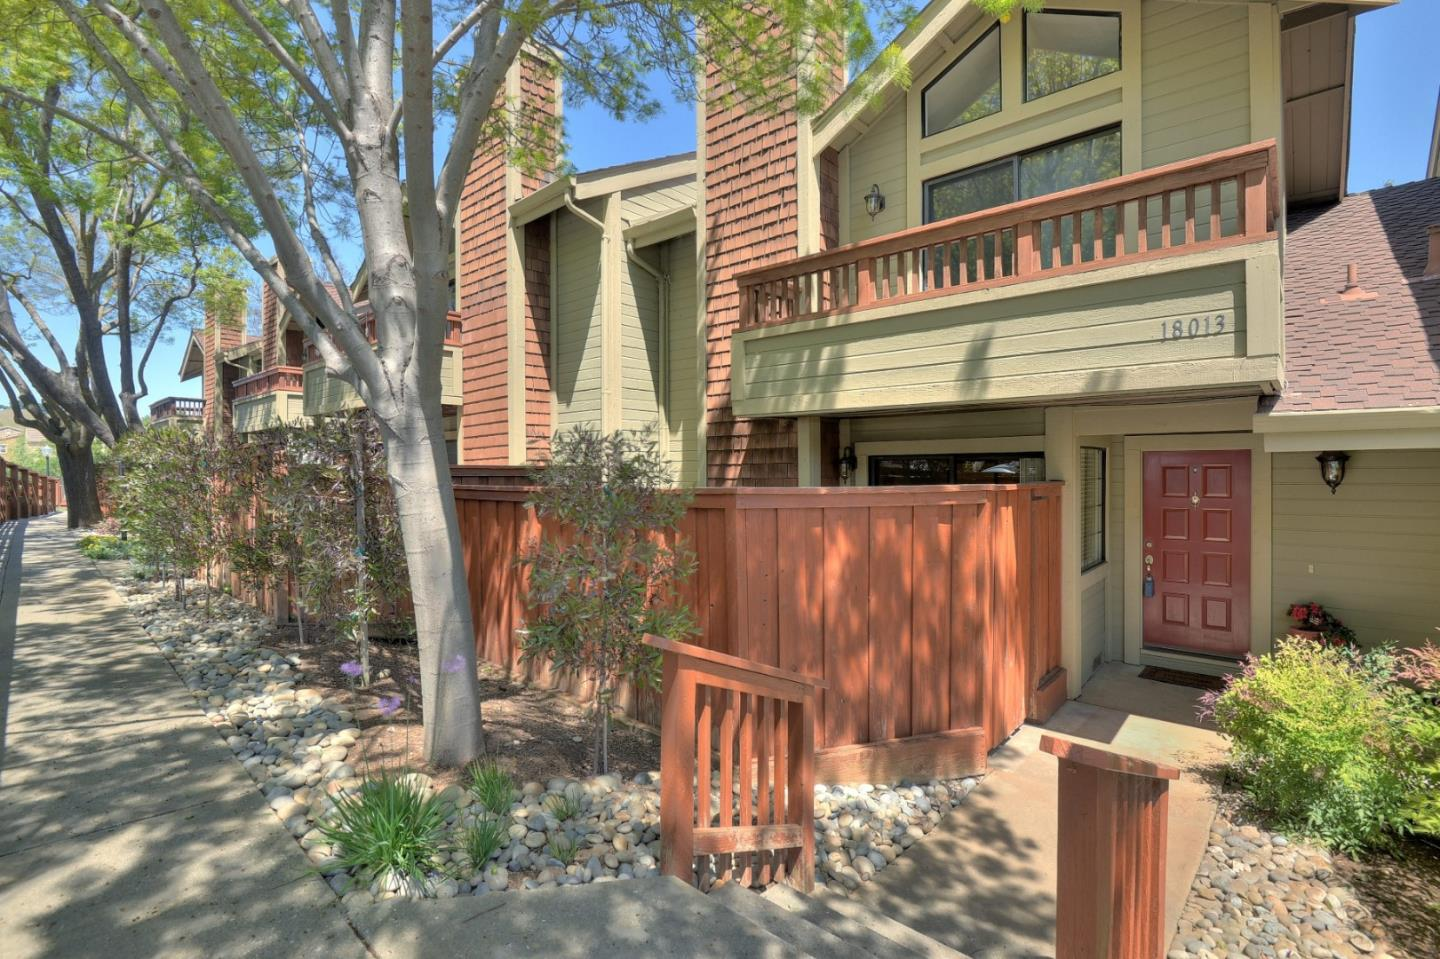 One of Morgan Hill 2 Bedroom Homes for Sale at 18013 Hillwood LN